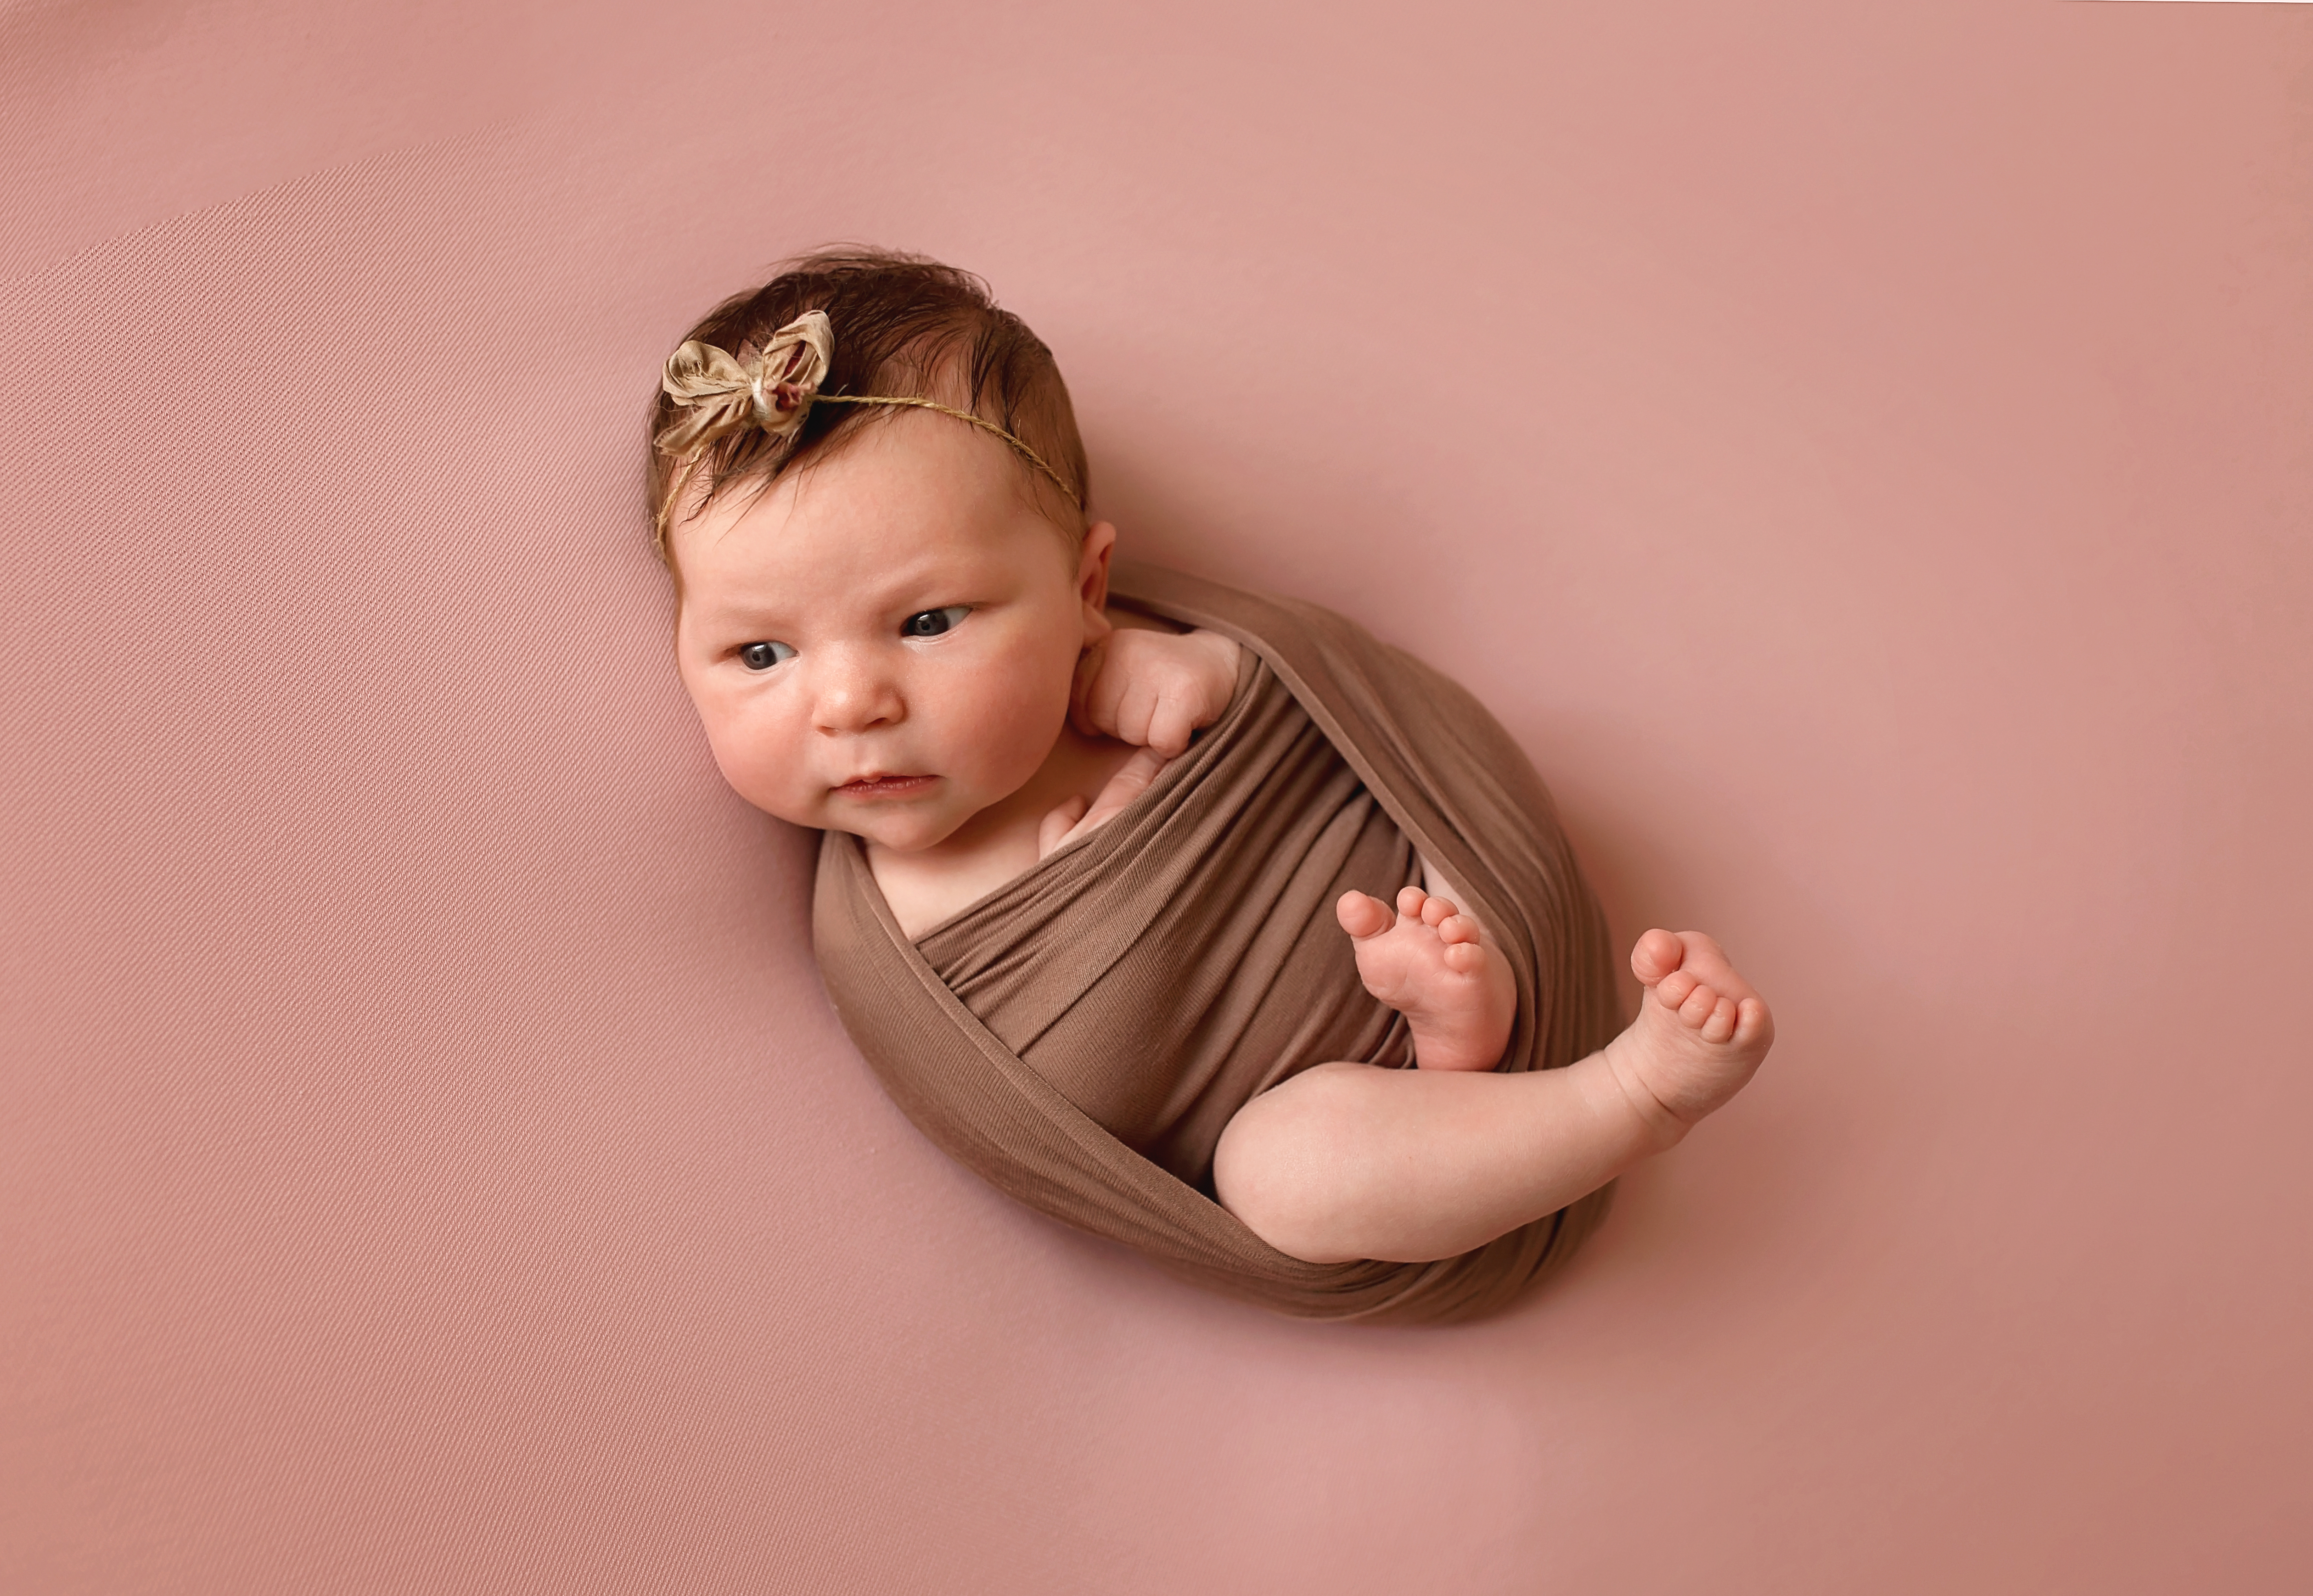 Beautiful baby photography